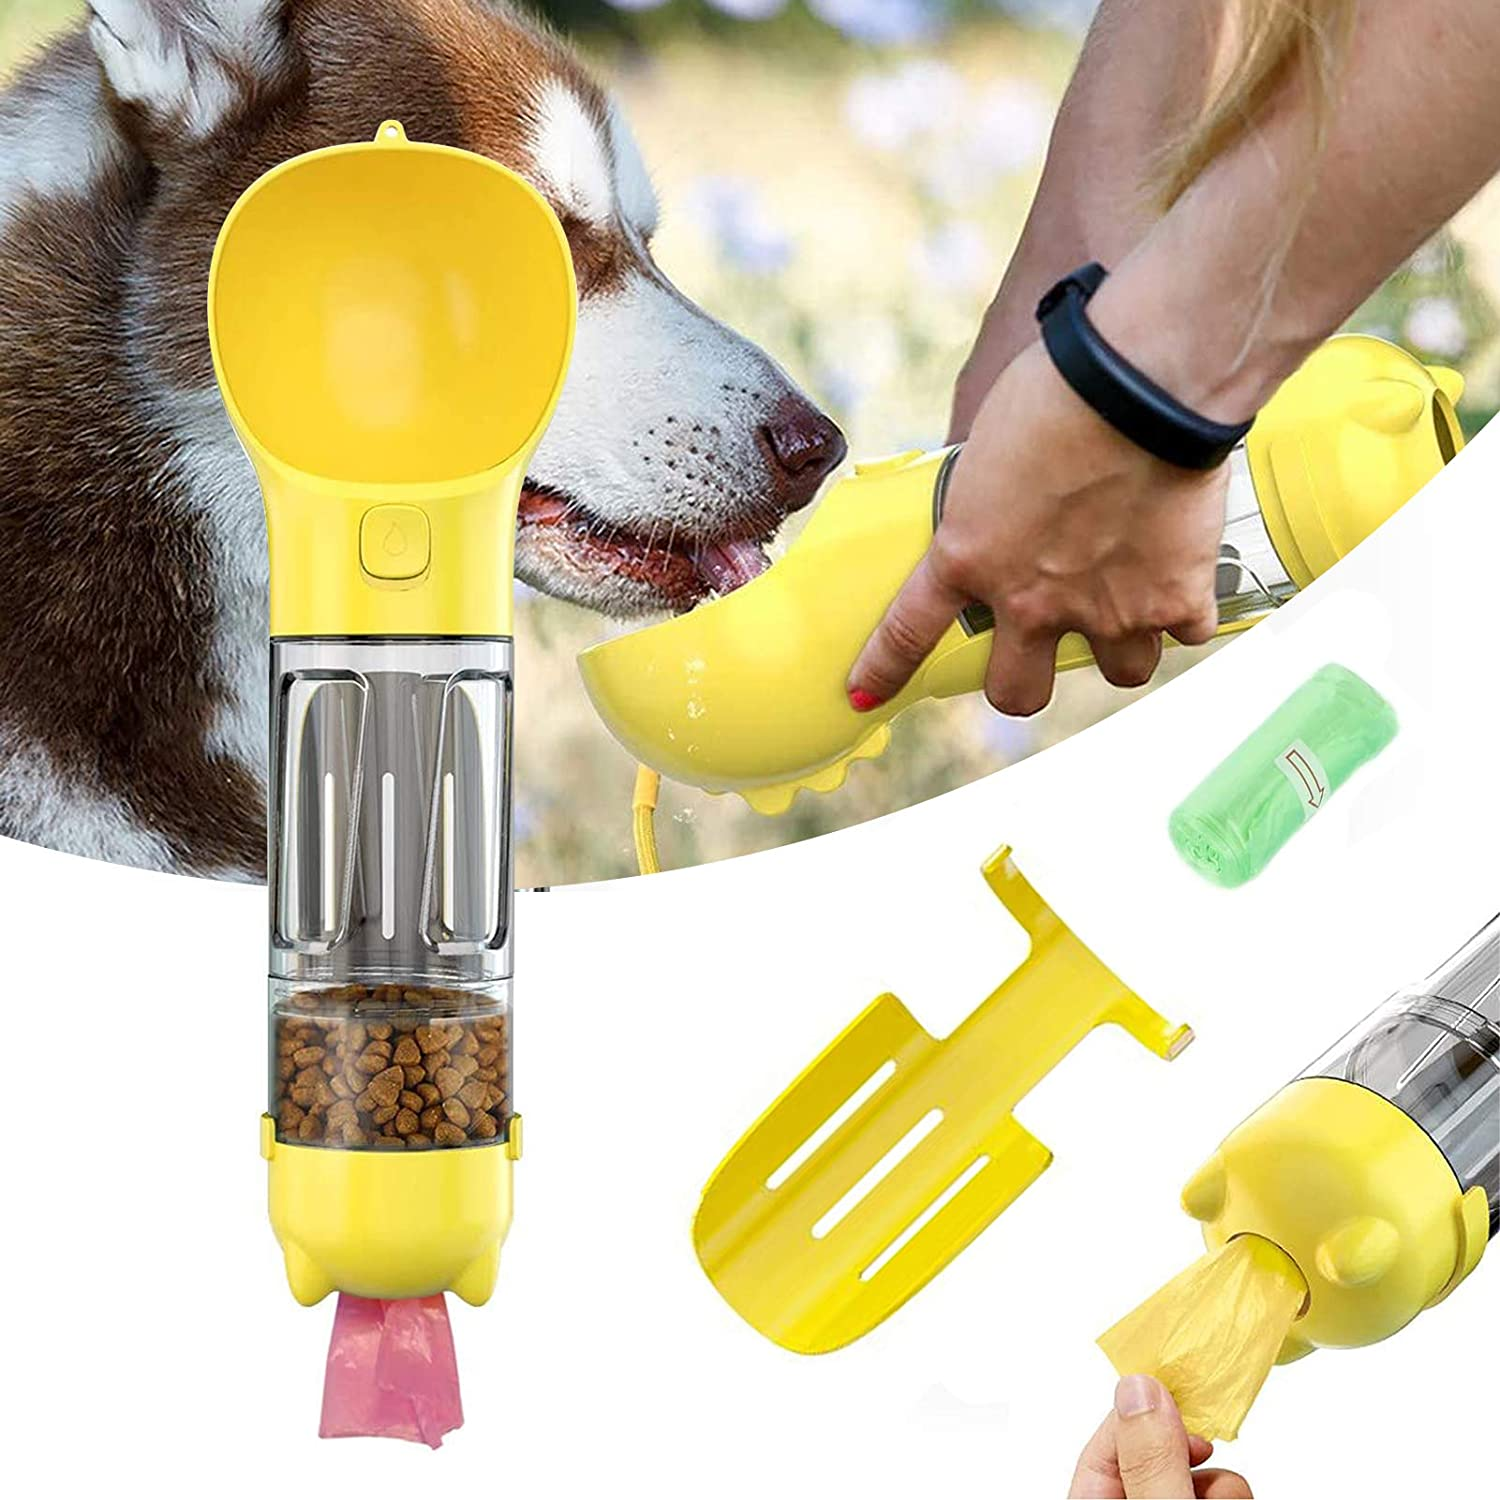 Dog Water Bottle, Puppy Water Dispenser with Drinking Bowl, Lightweight Portable with Stool Shovel Garbage Bag Storage for Pets Outdoor Walking, Hiking, Travel, Food Grade Plastic 13 OZ (Yellow)